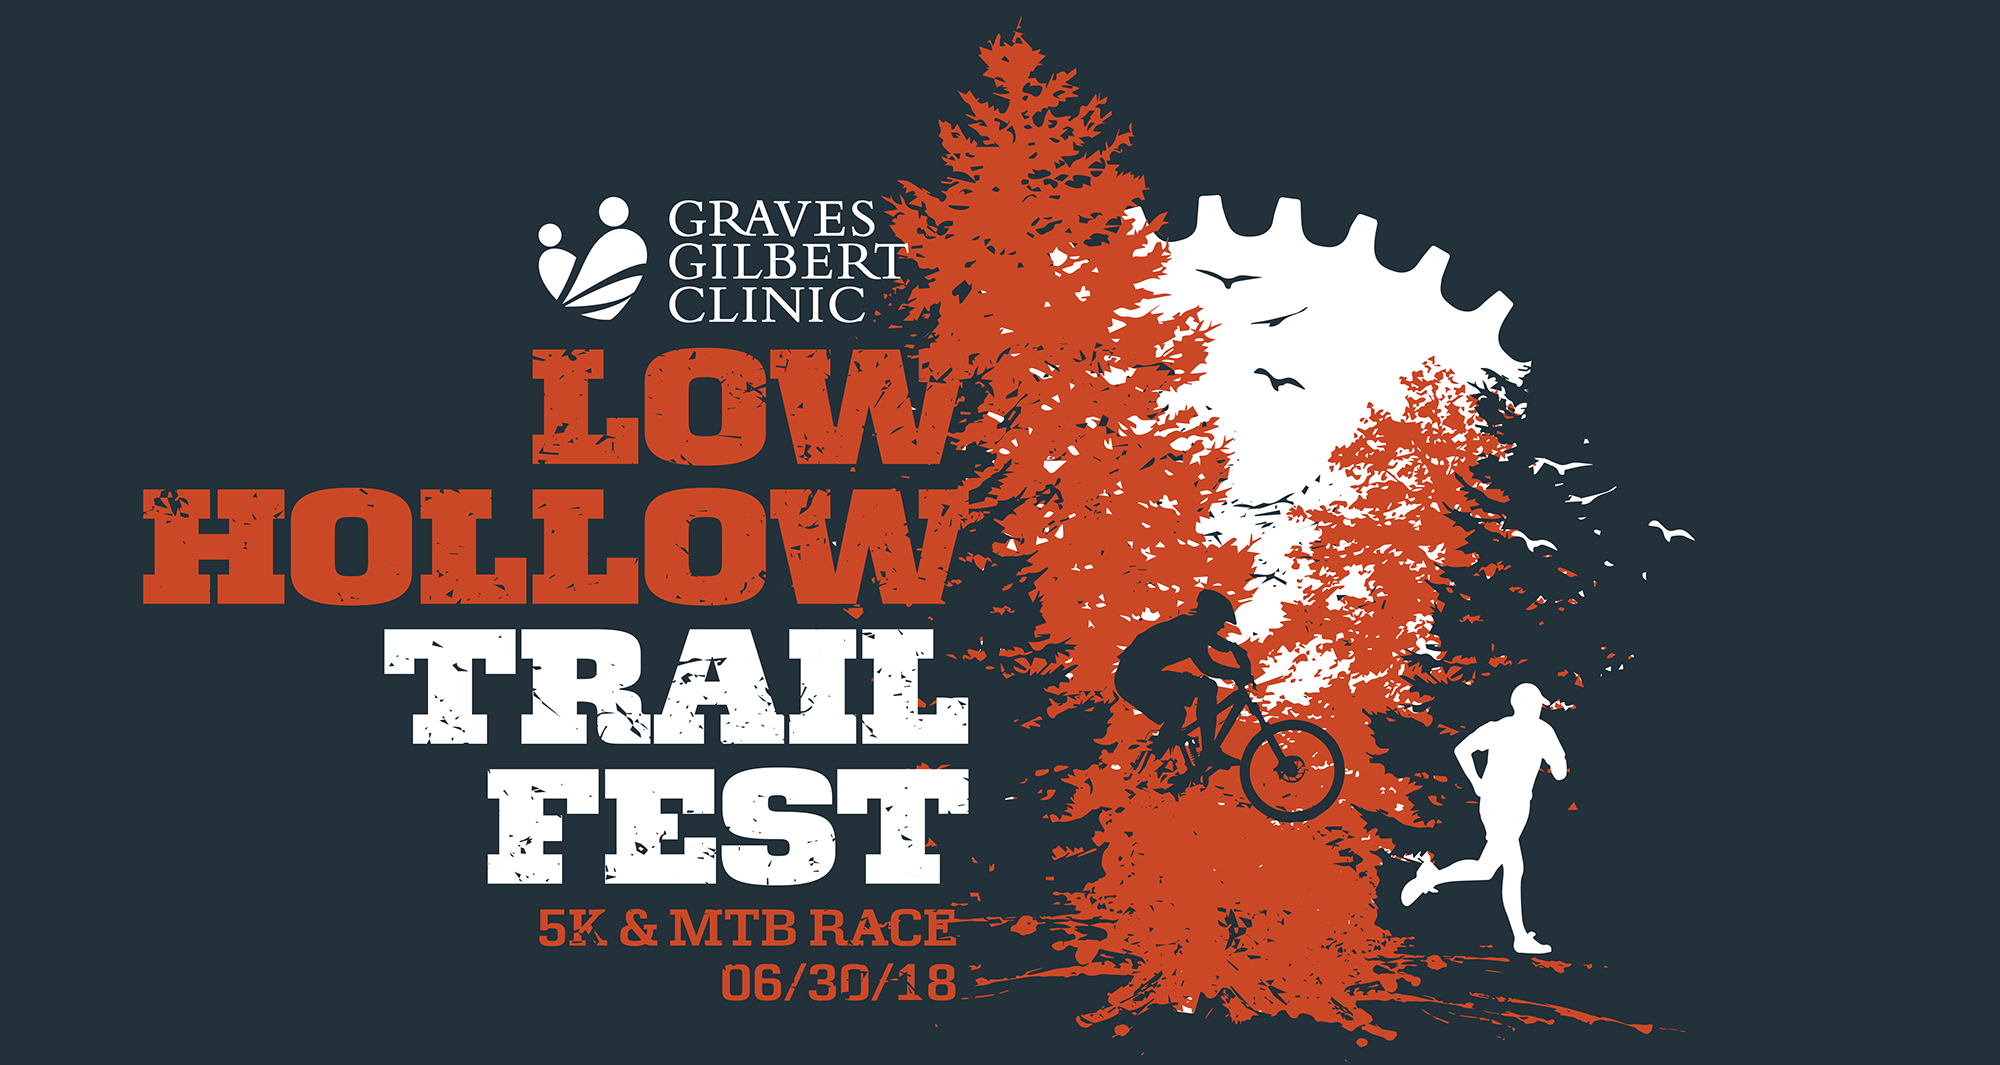 2018 Low Hollow Trail Fest The 6th Annual Event Bowling Green